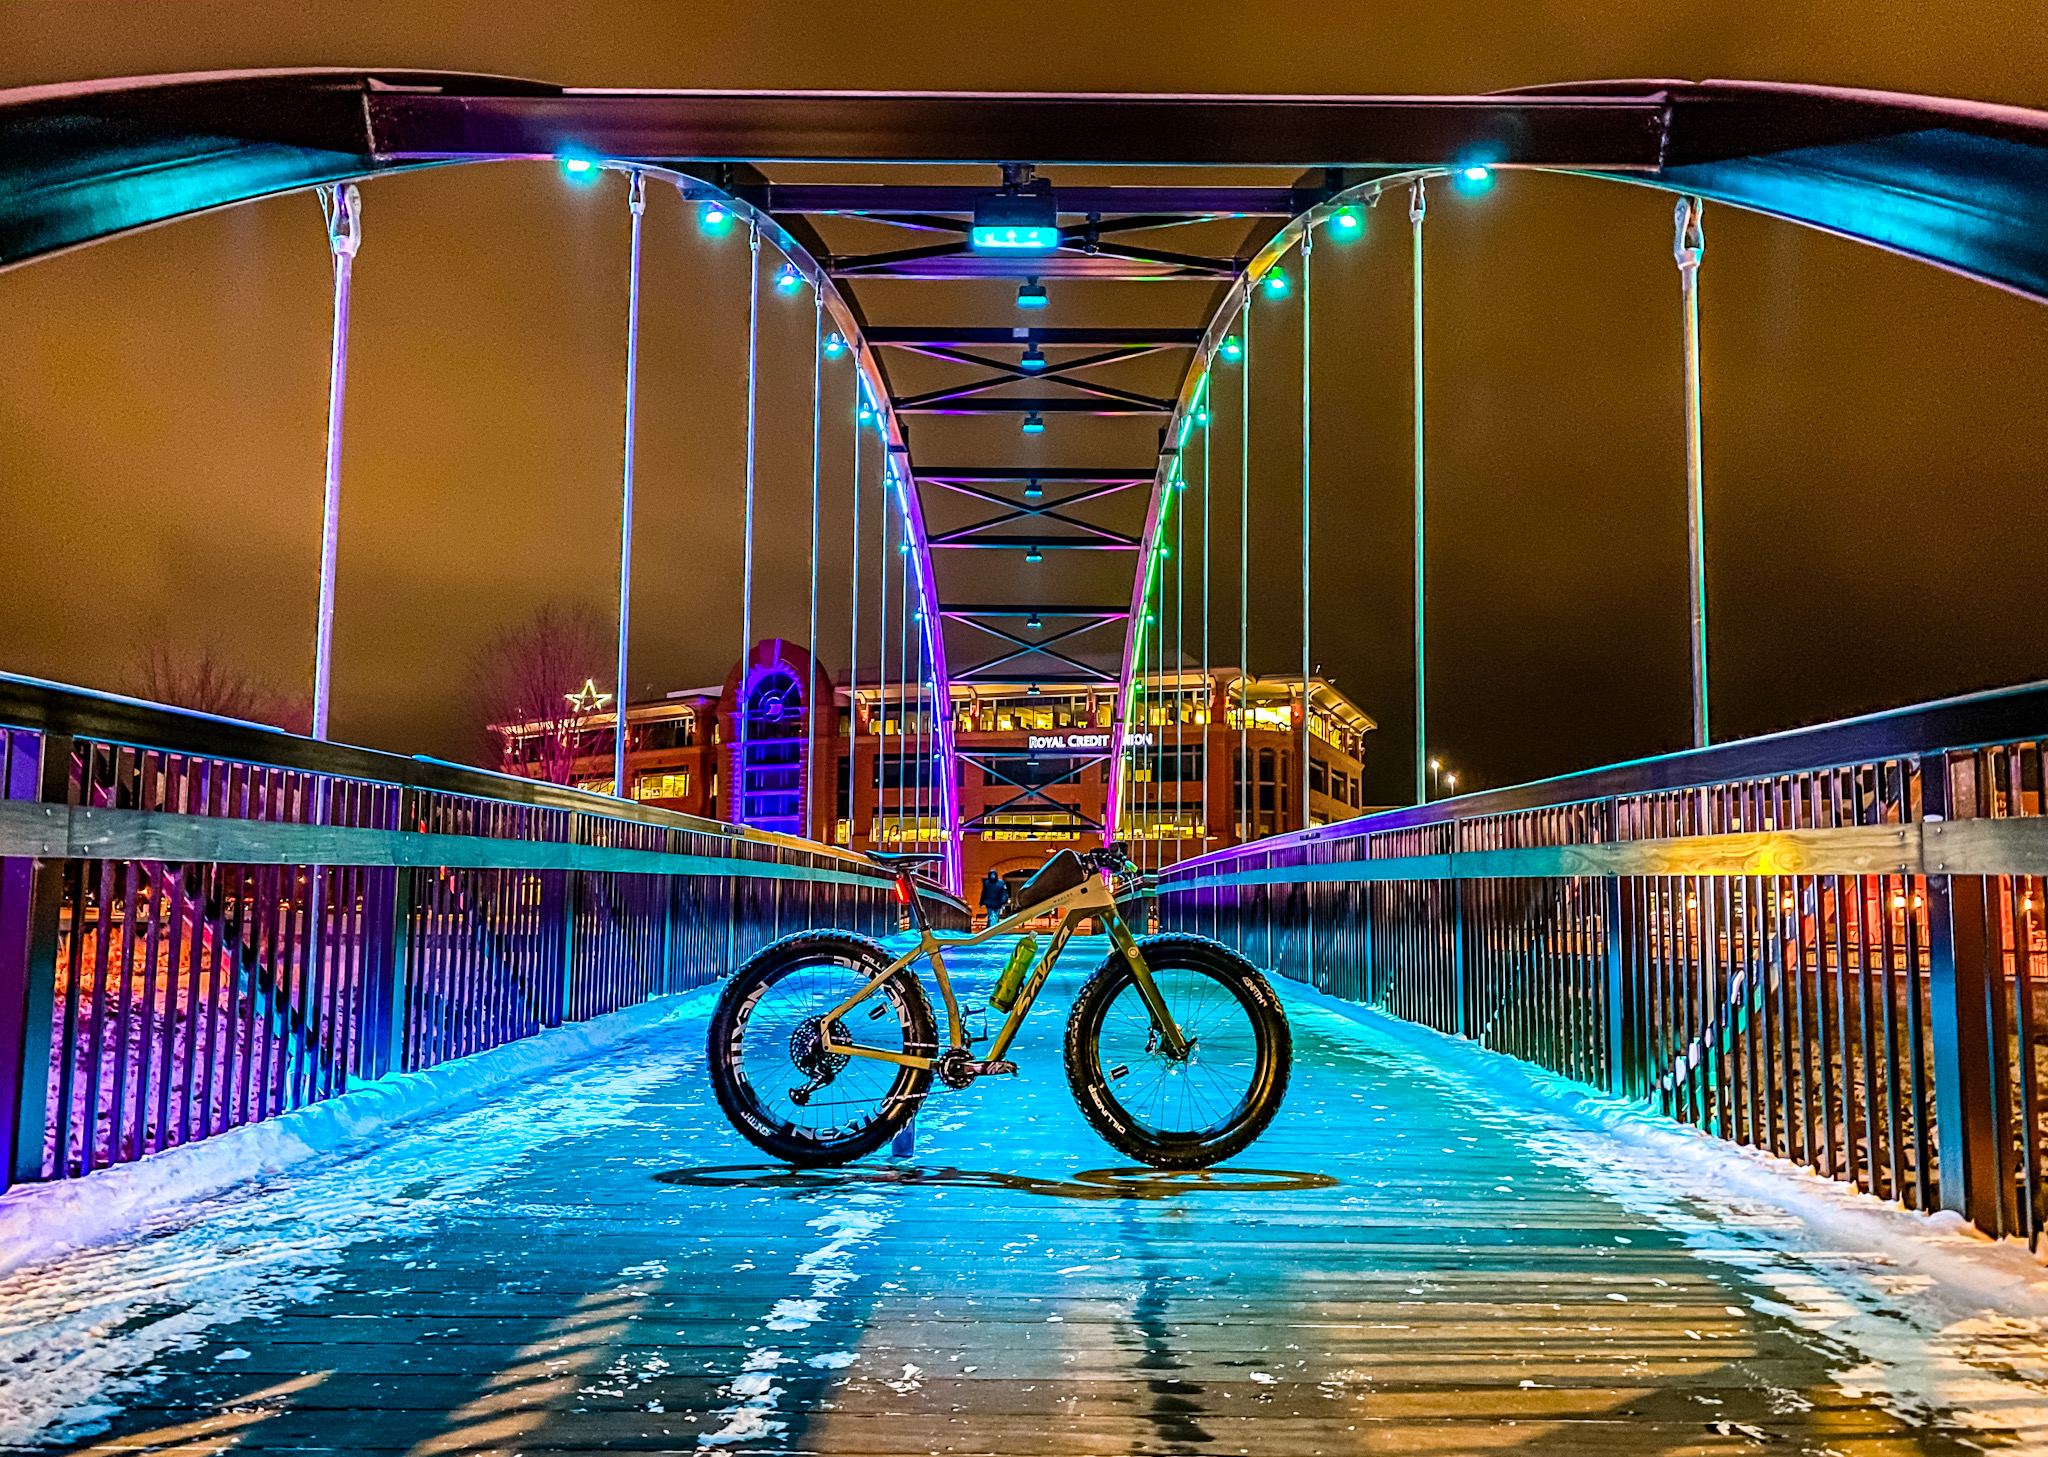 Bikerumor Pic Of The Day: Eau Claire, Wisconsin